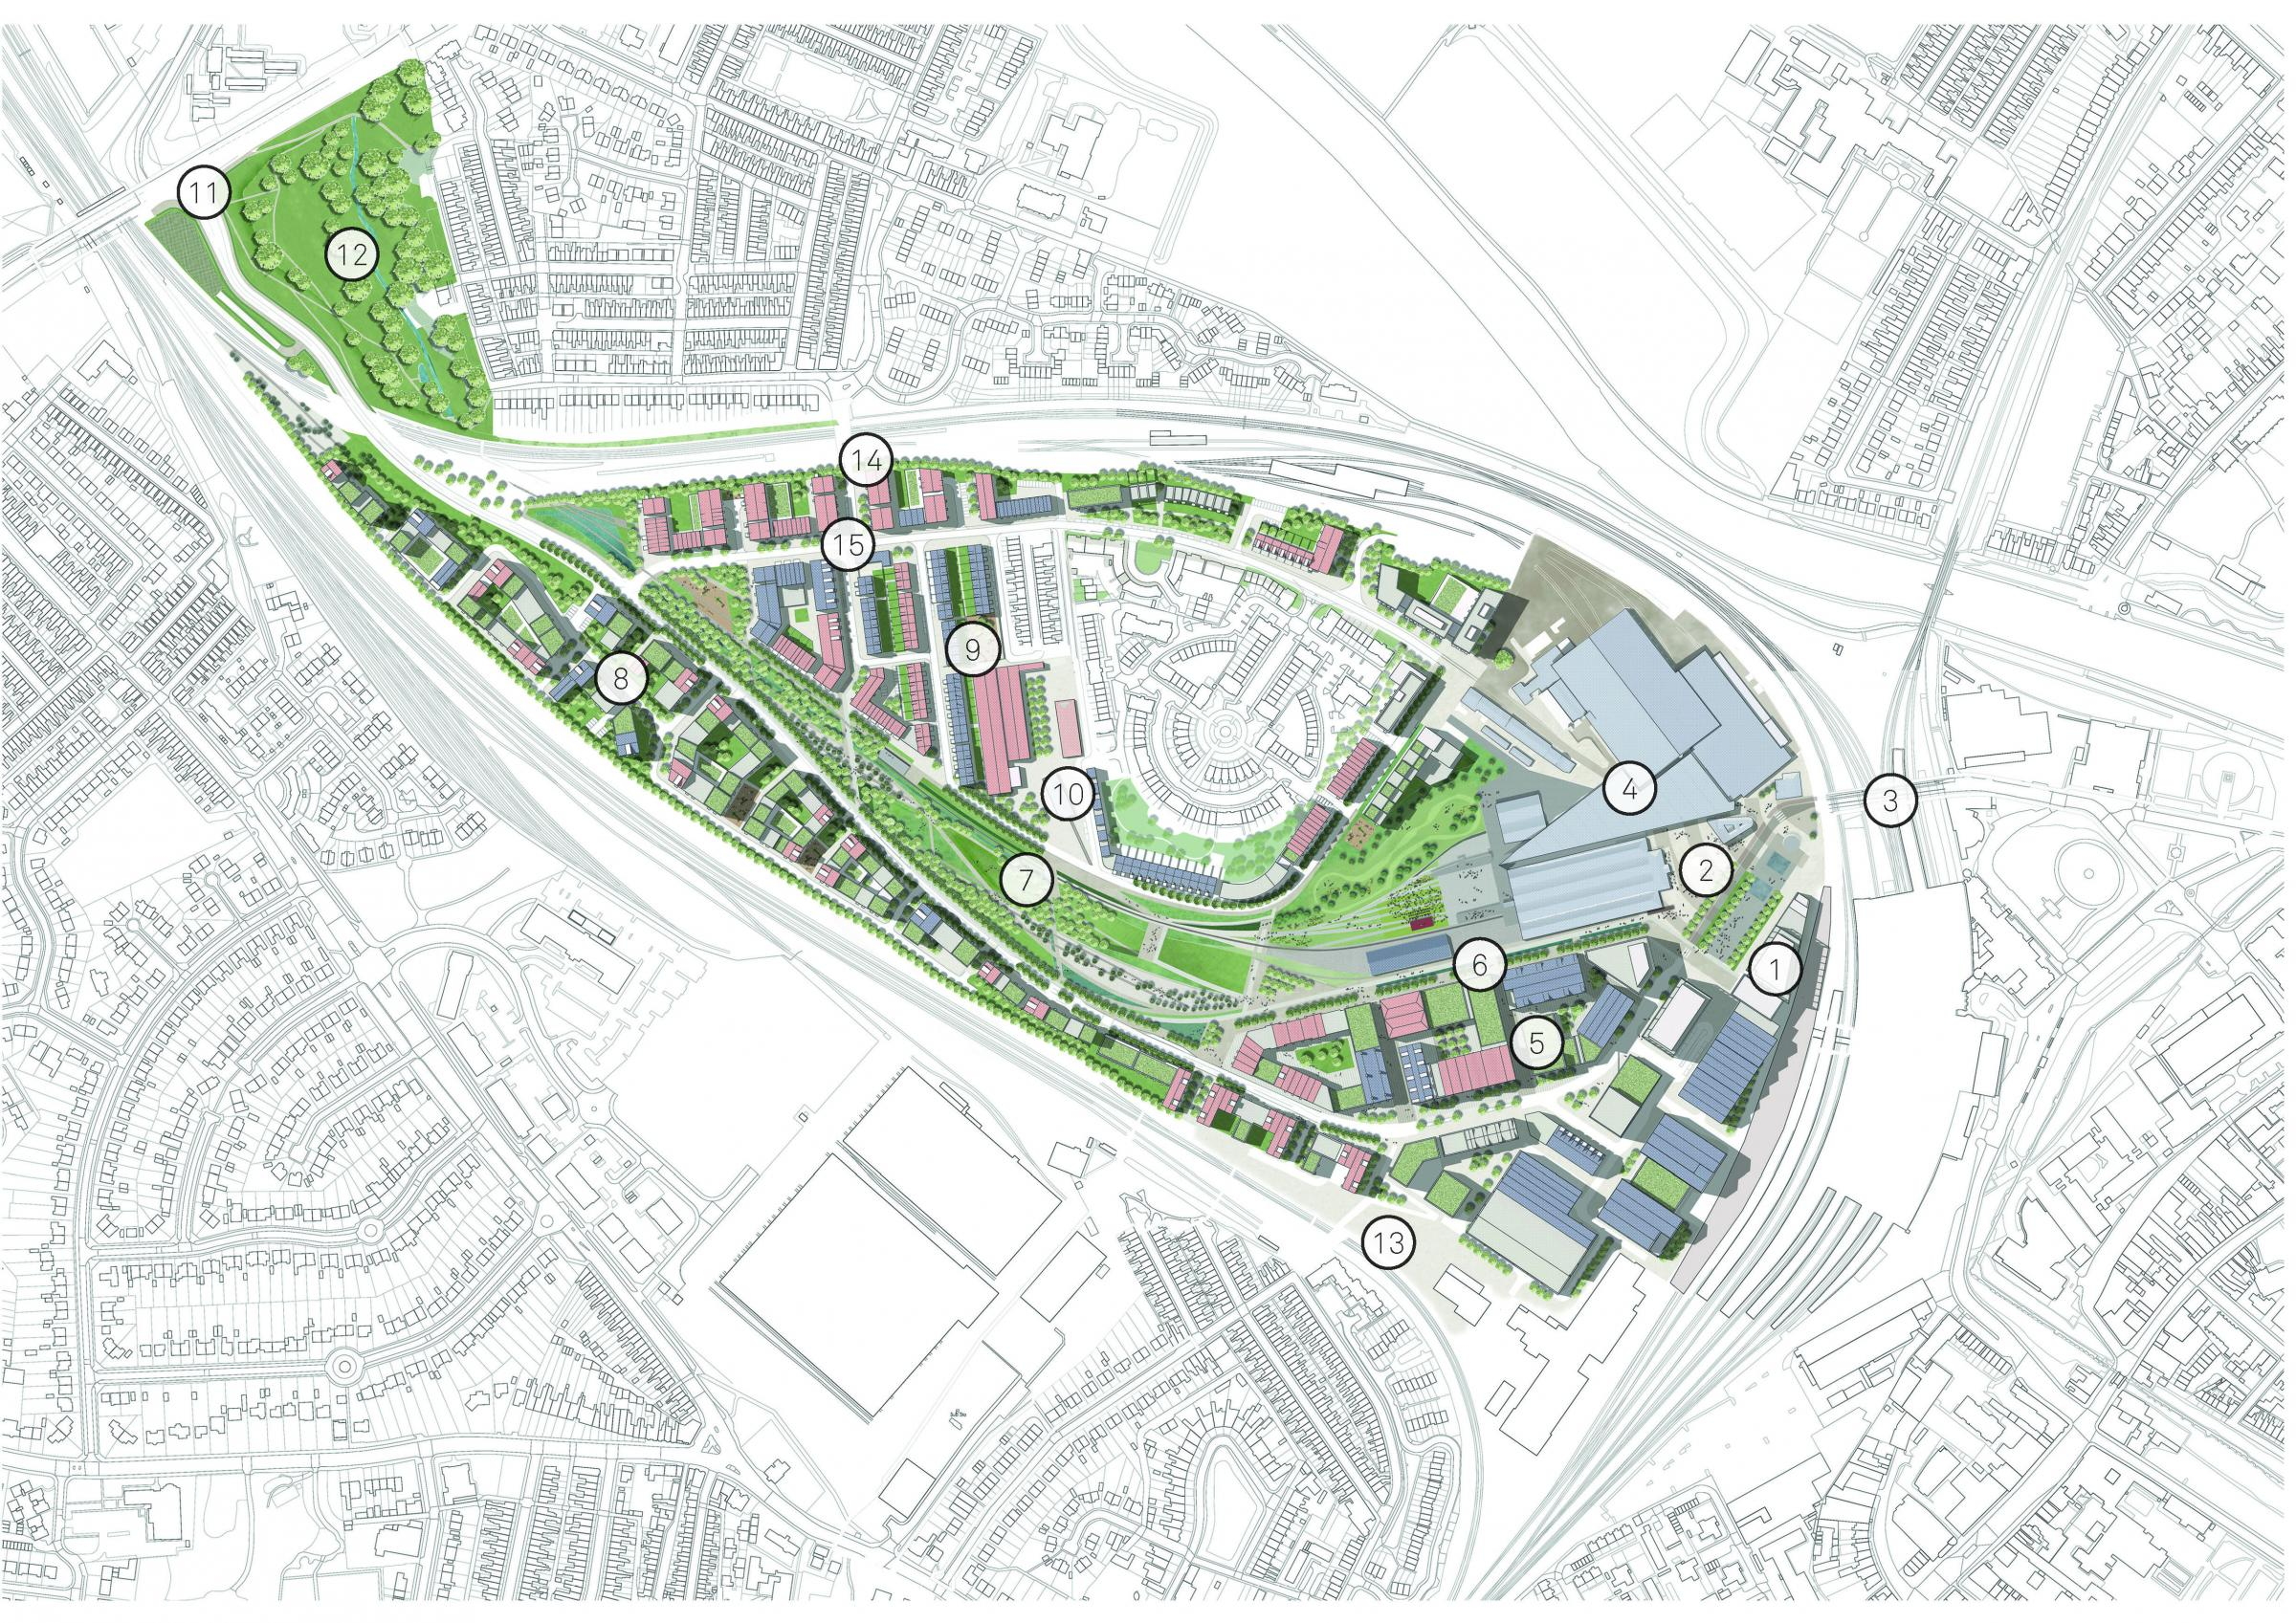 The York Central Masterplan: an illustrative map